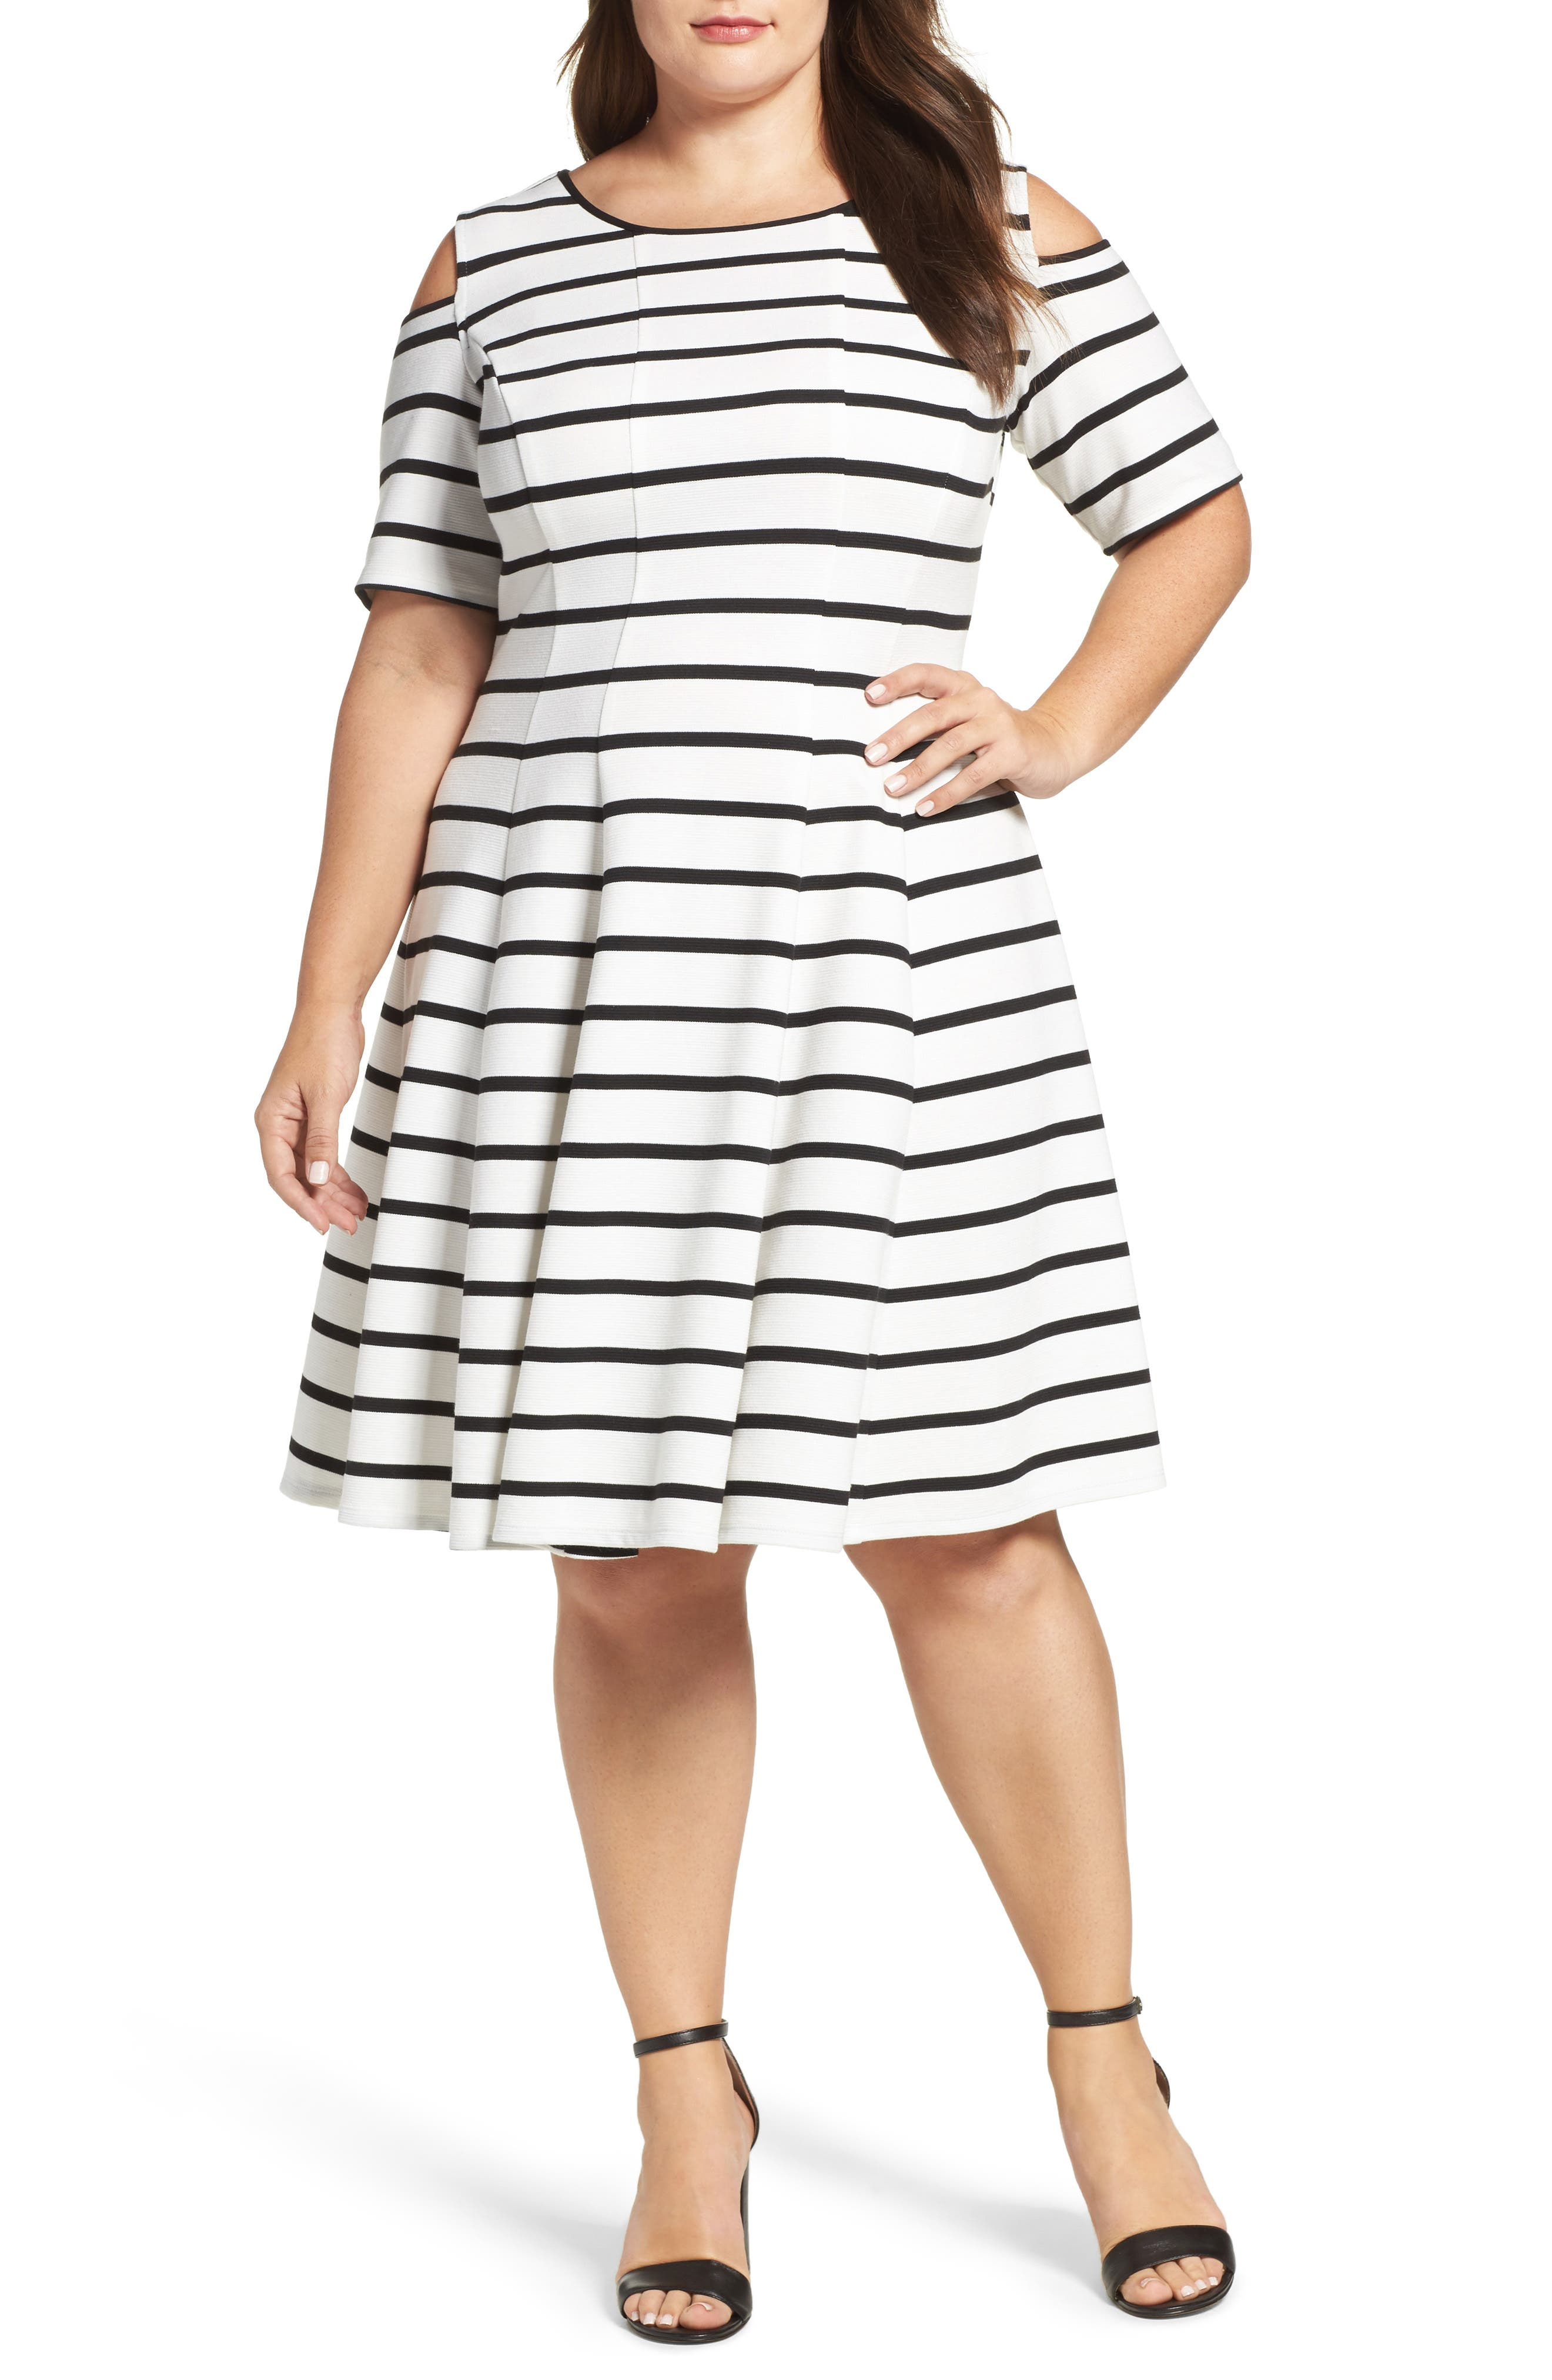 Alternate Image 1 Selected - Gabby Skye Cold Shoulder Fit & Flare Dress (Plus Size)